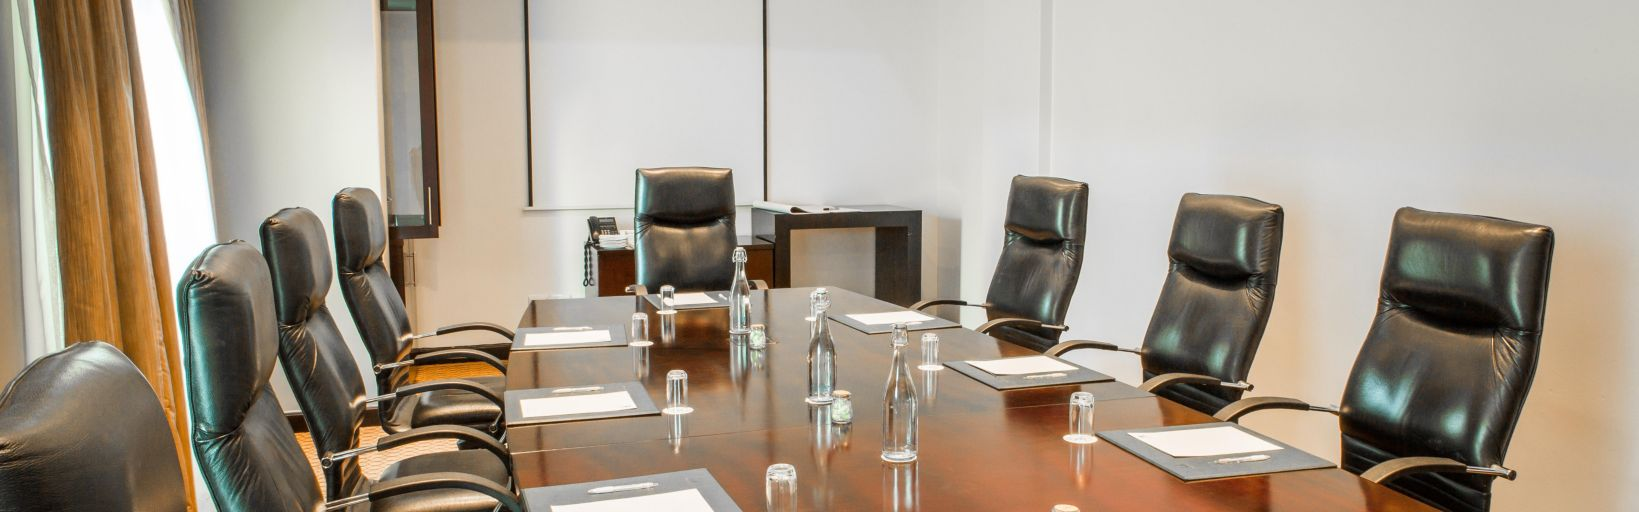 Holiday Inn Sandton Rivonia Road Hotel Groups Meeting Rooms Meja Makan Opal Board Room Boardroom